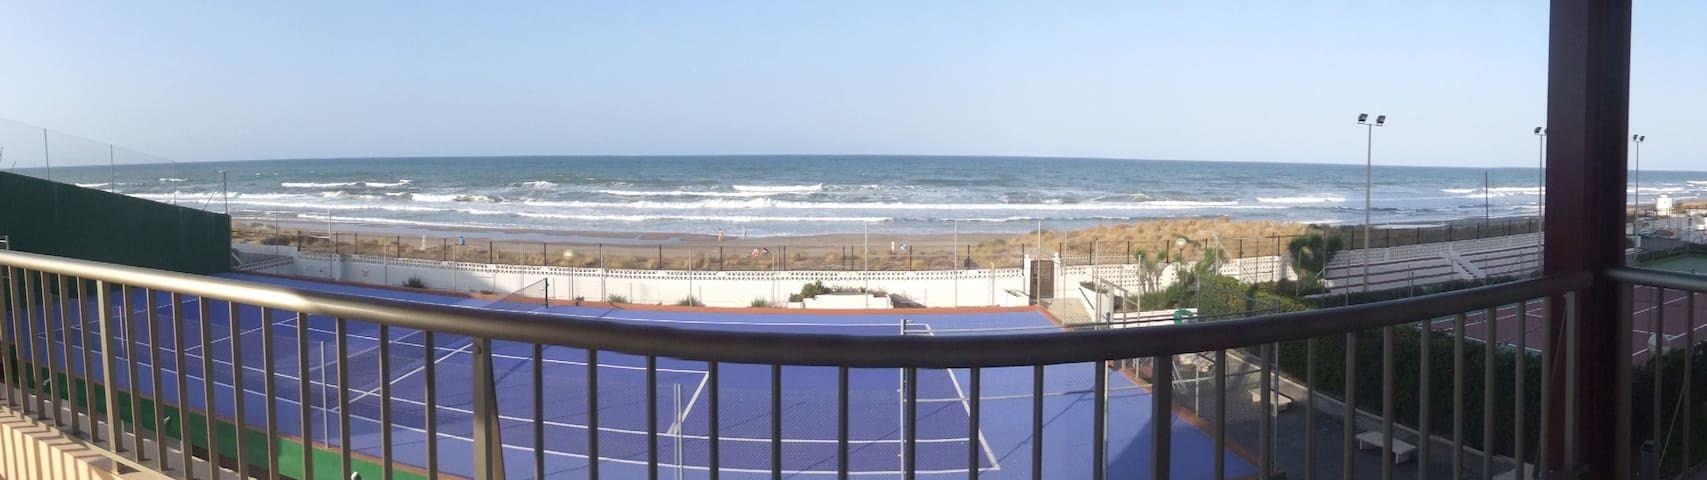 First line 2BR apartment south of Valencia - Mareny de Barraquetes